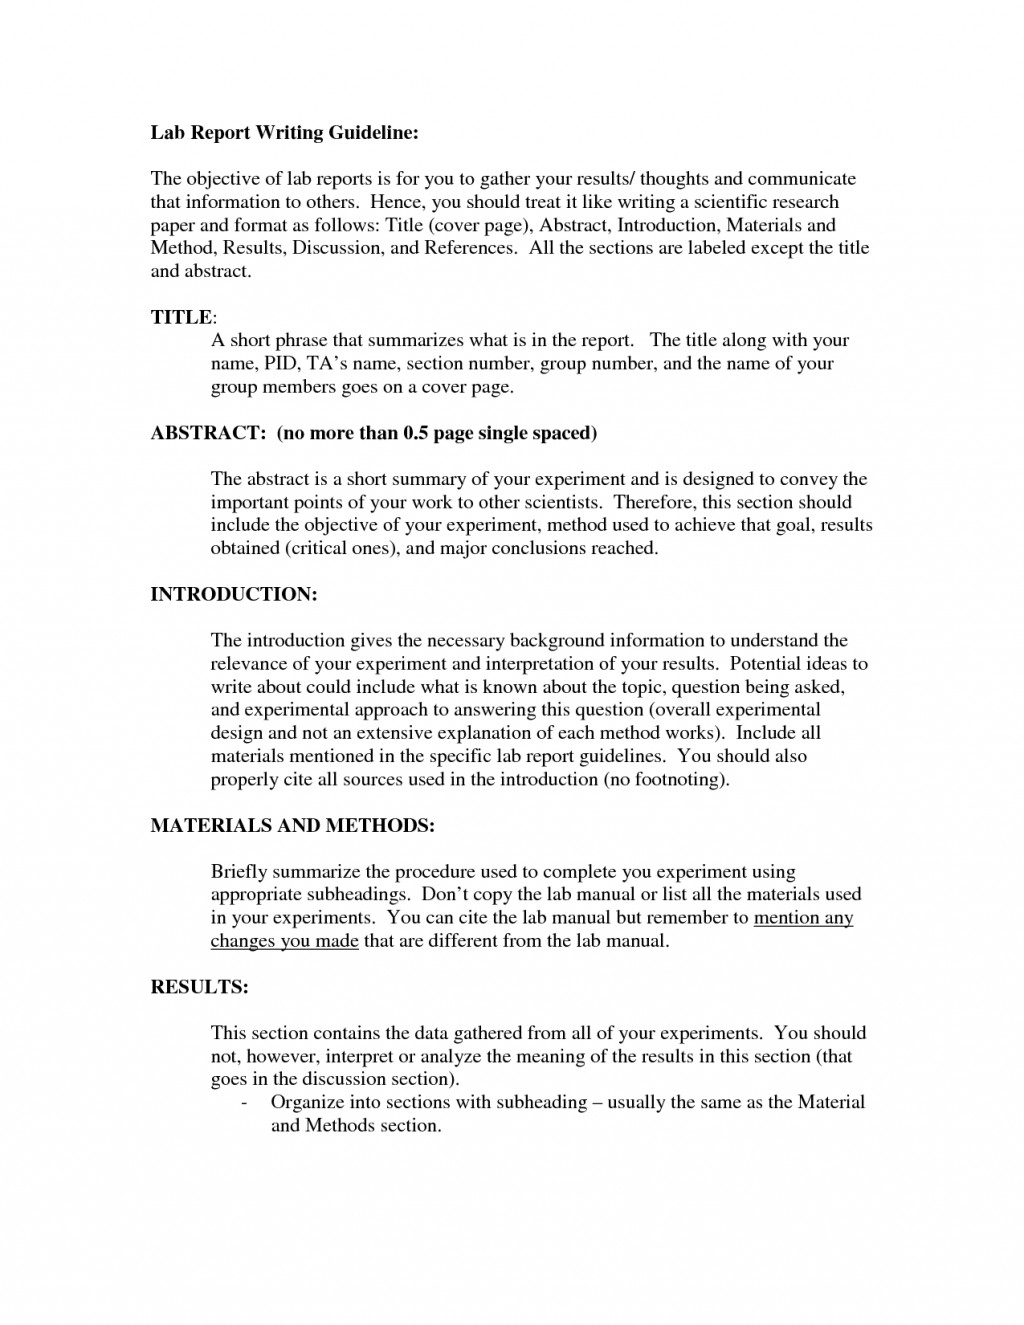 003 Dft1eehnlq Research Paper Example Of Materialsnd Methods Section Wonderful Materials And A Large